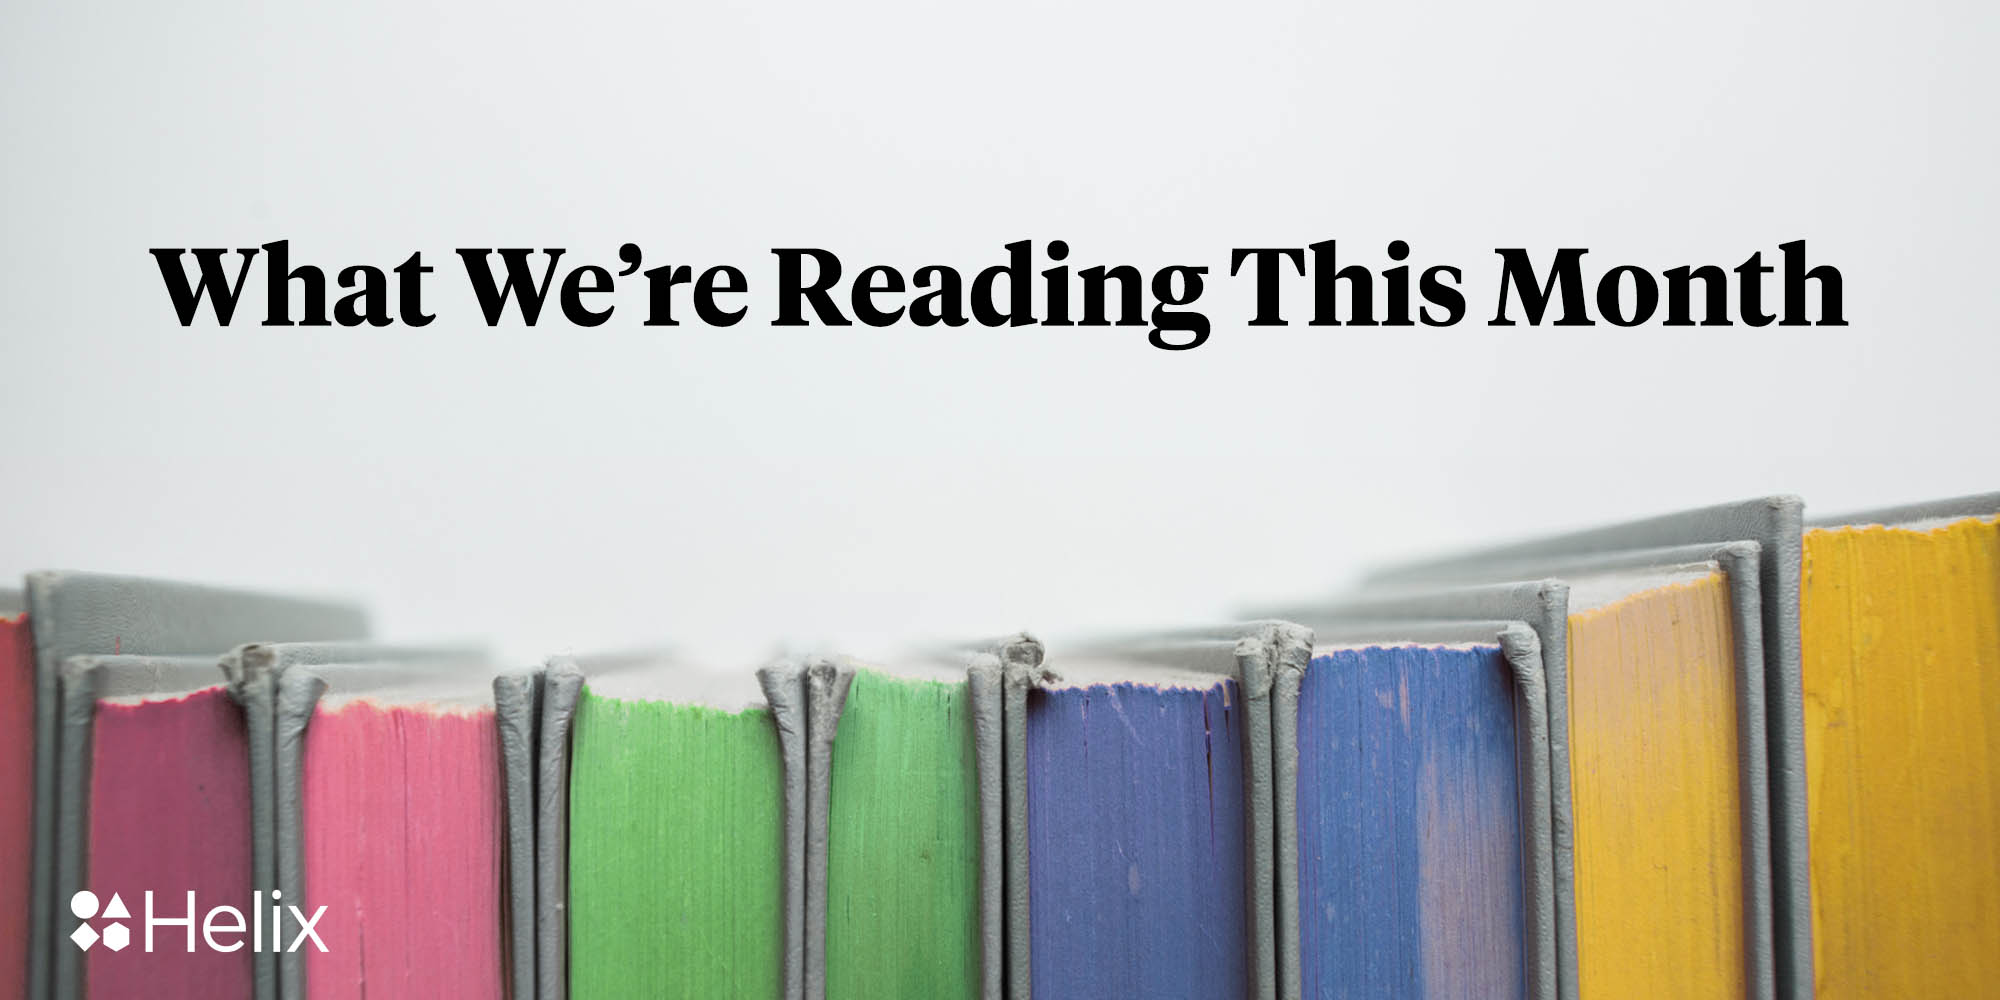 What we're reading this month